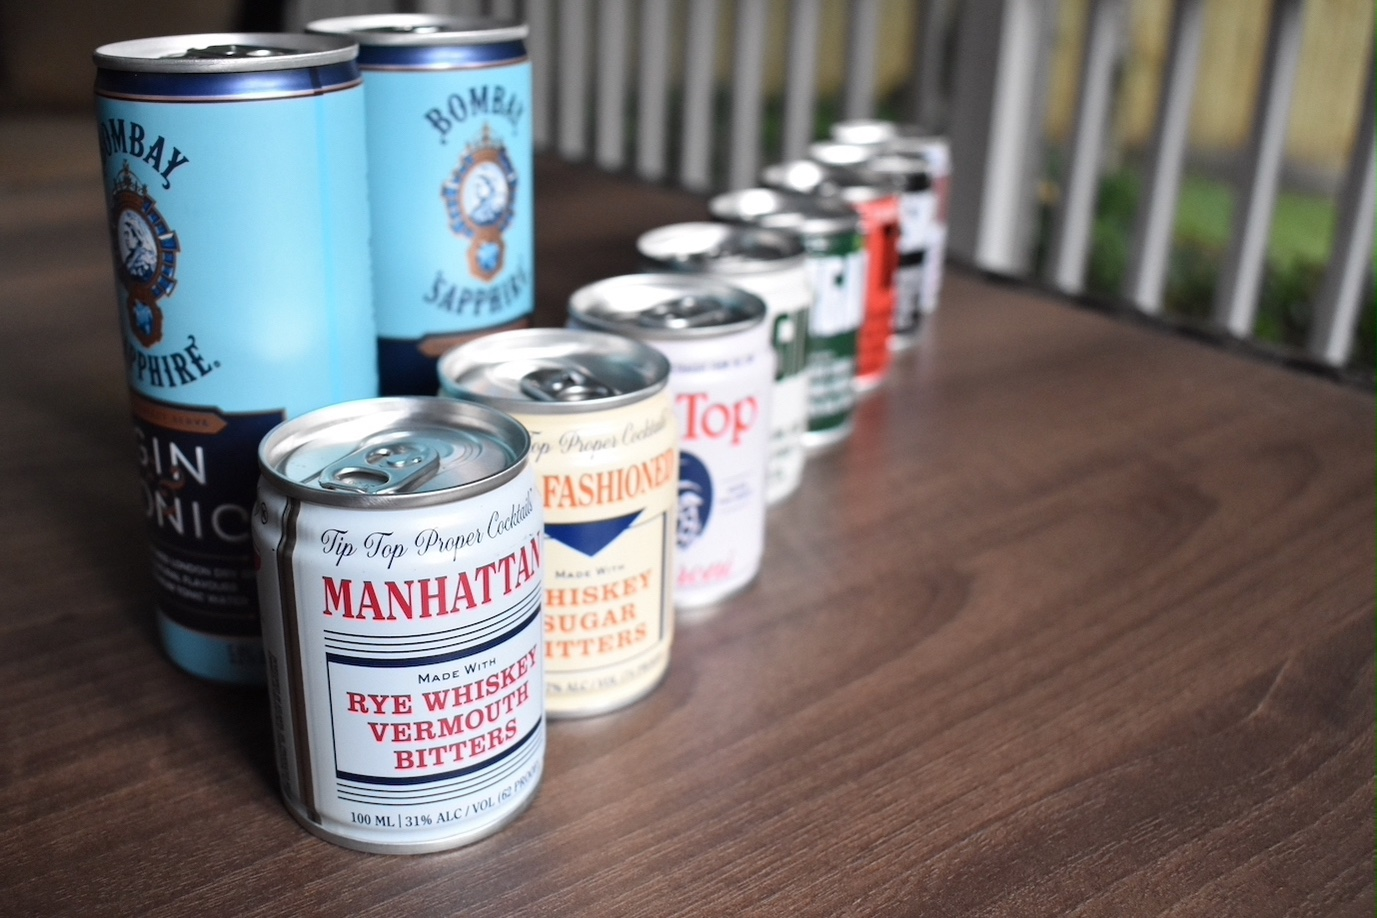 A new generation of ready-to-drink products are making canned cocktails cool again